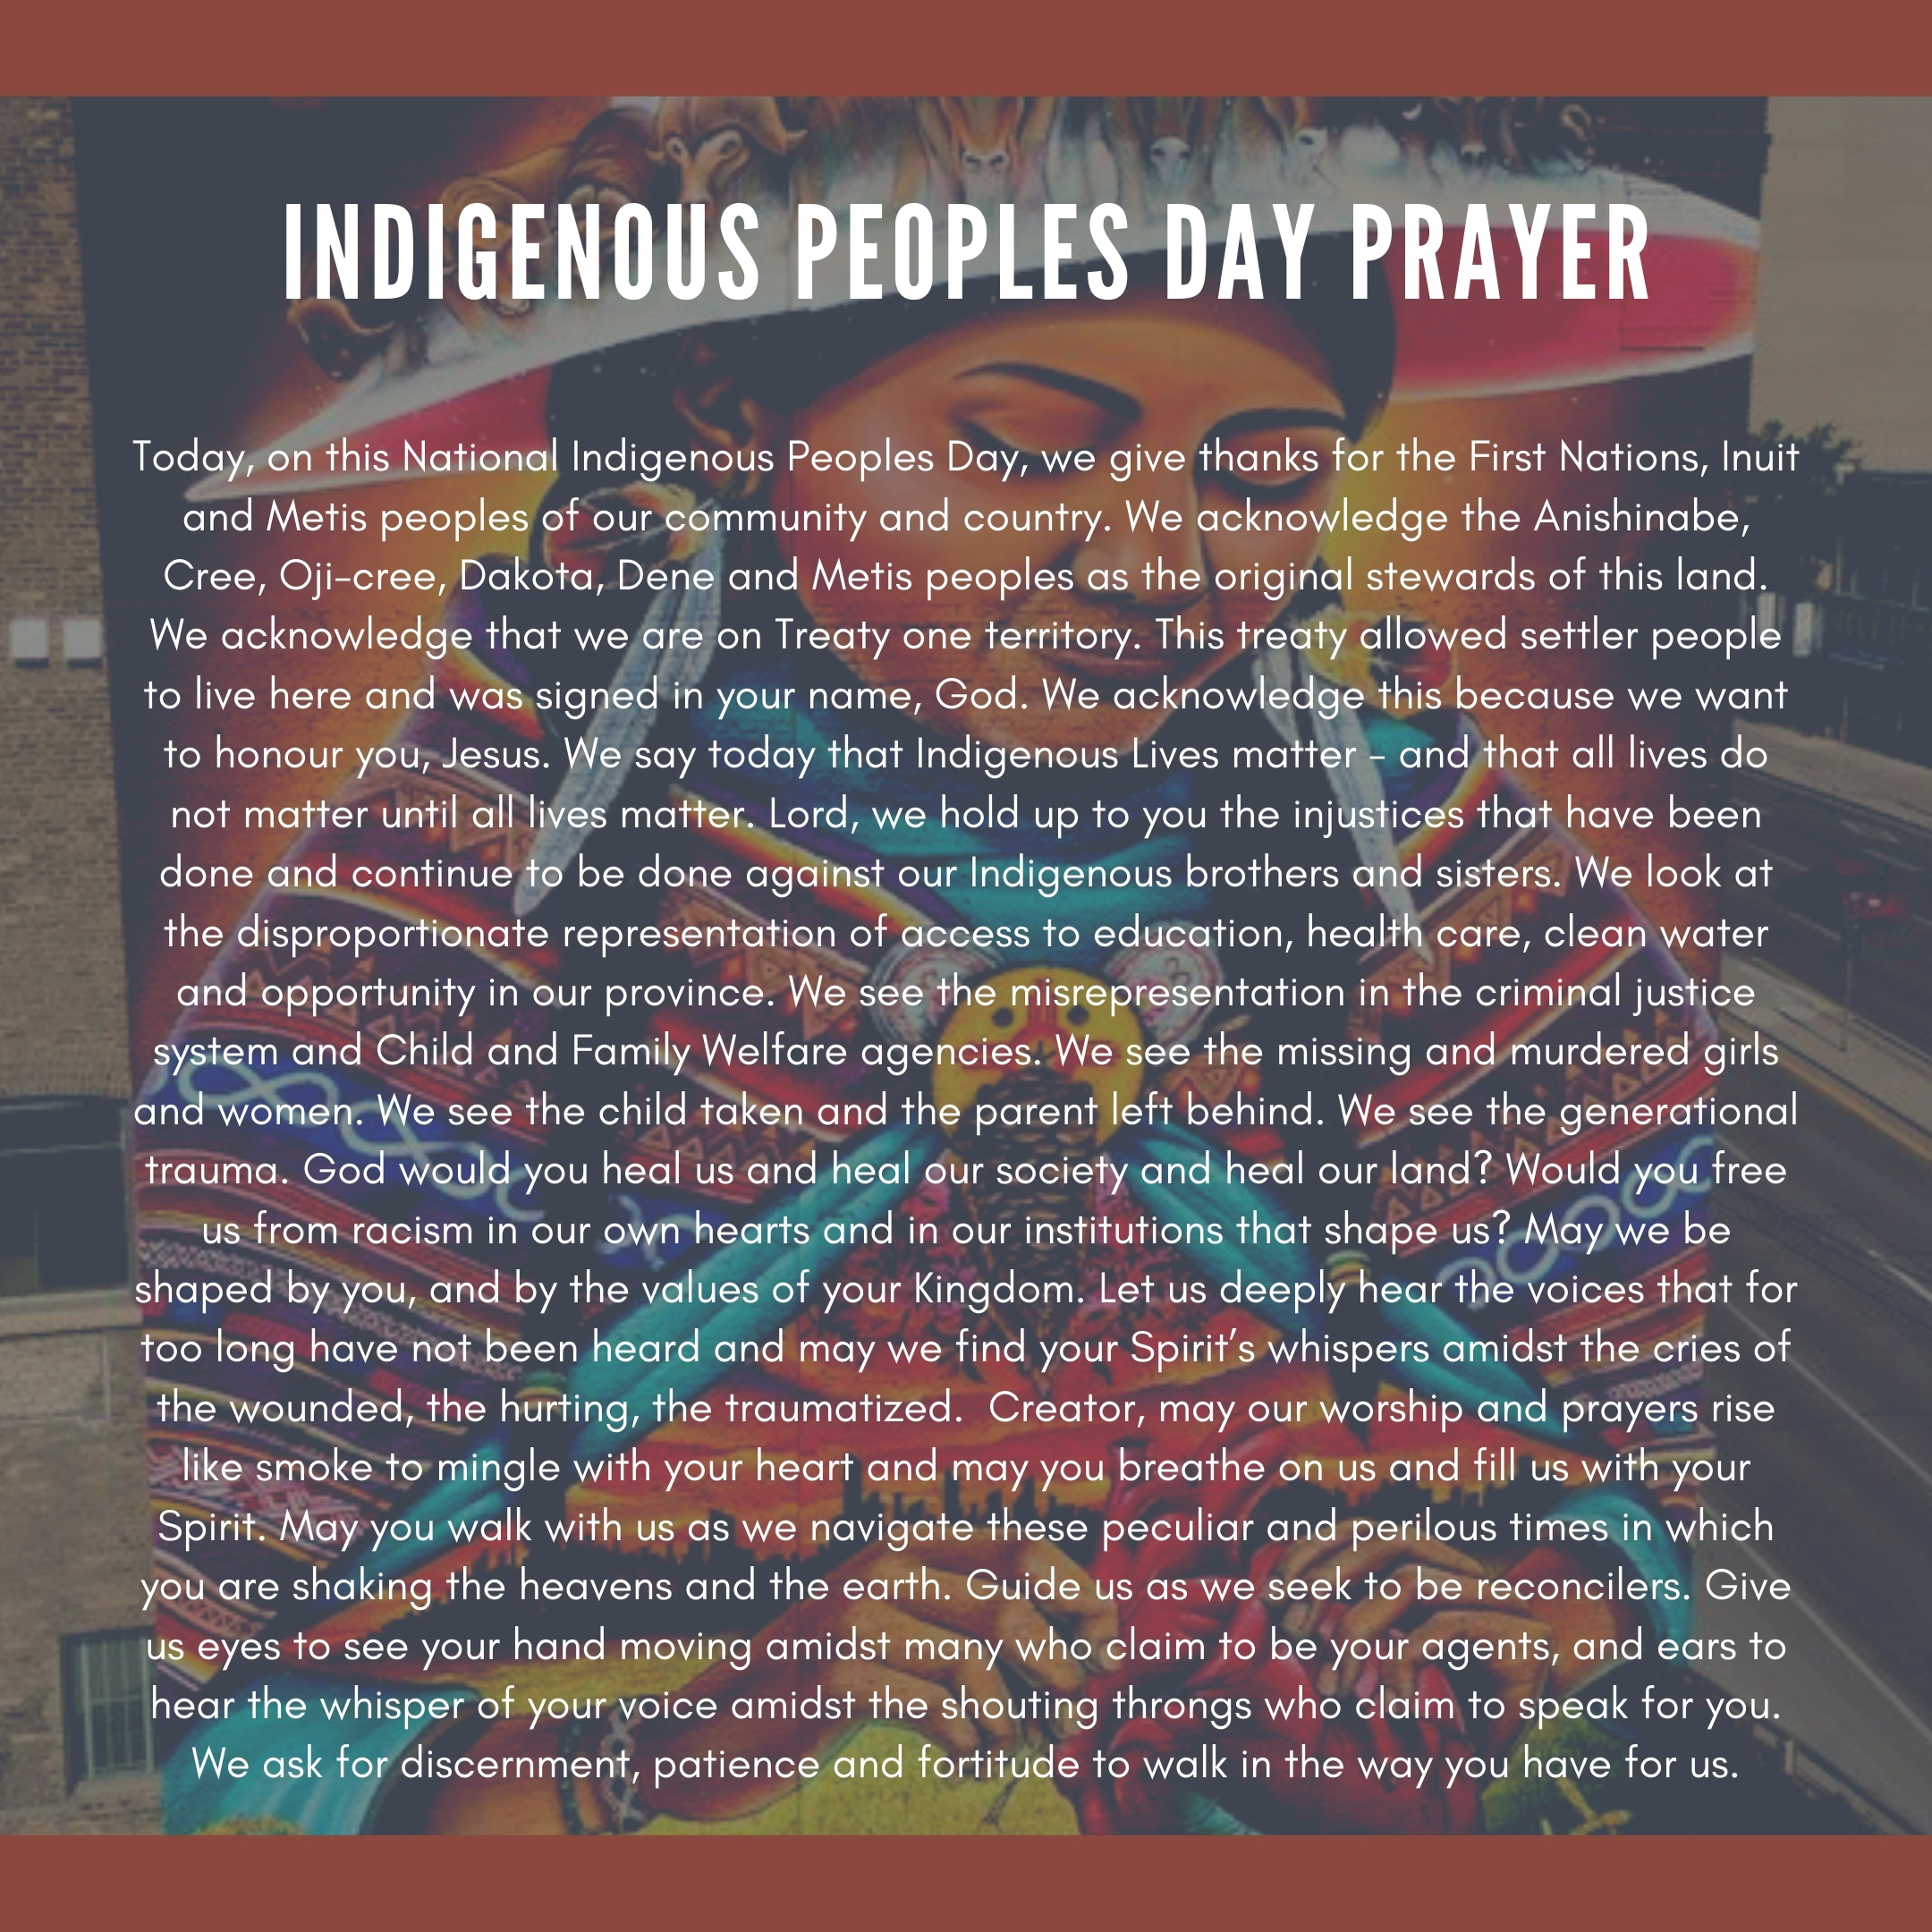 INDIGENOUS PEOPLES DAY PRAYER.jpg